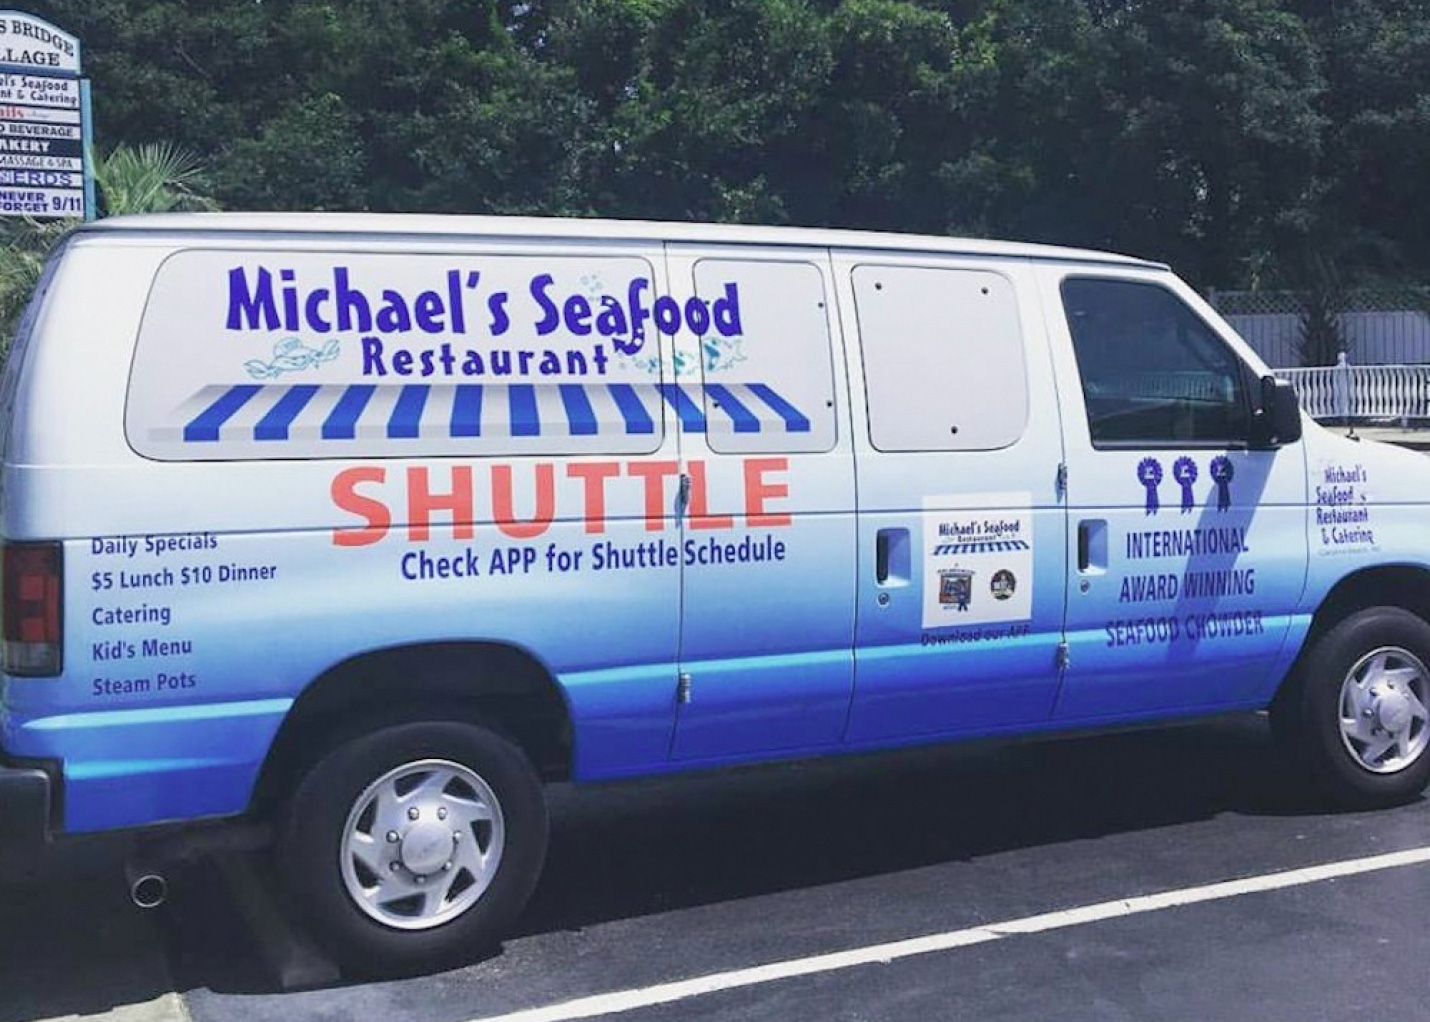 Daily Specials and Get Shuttled at Michael's Seafood